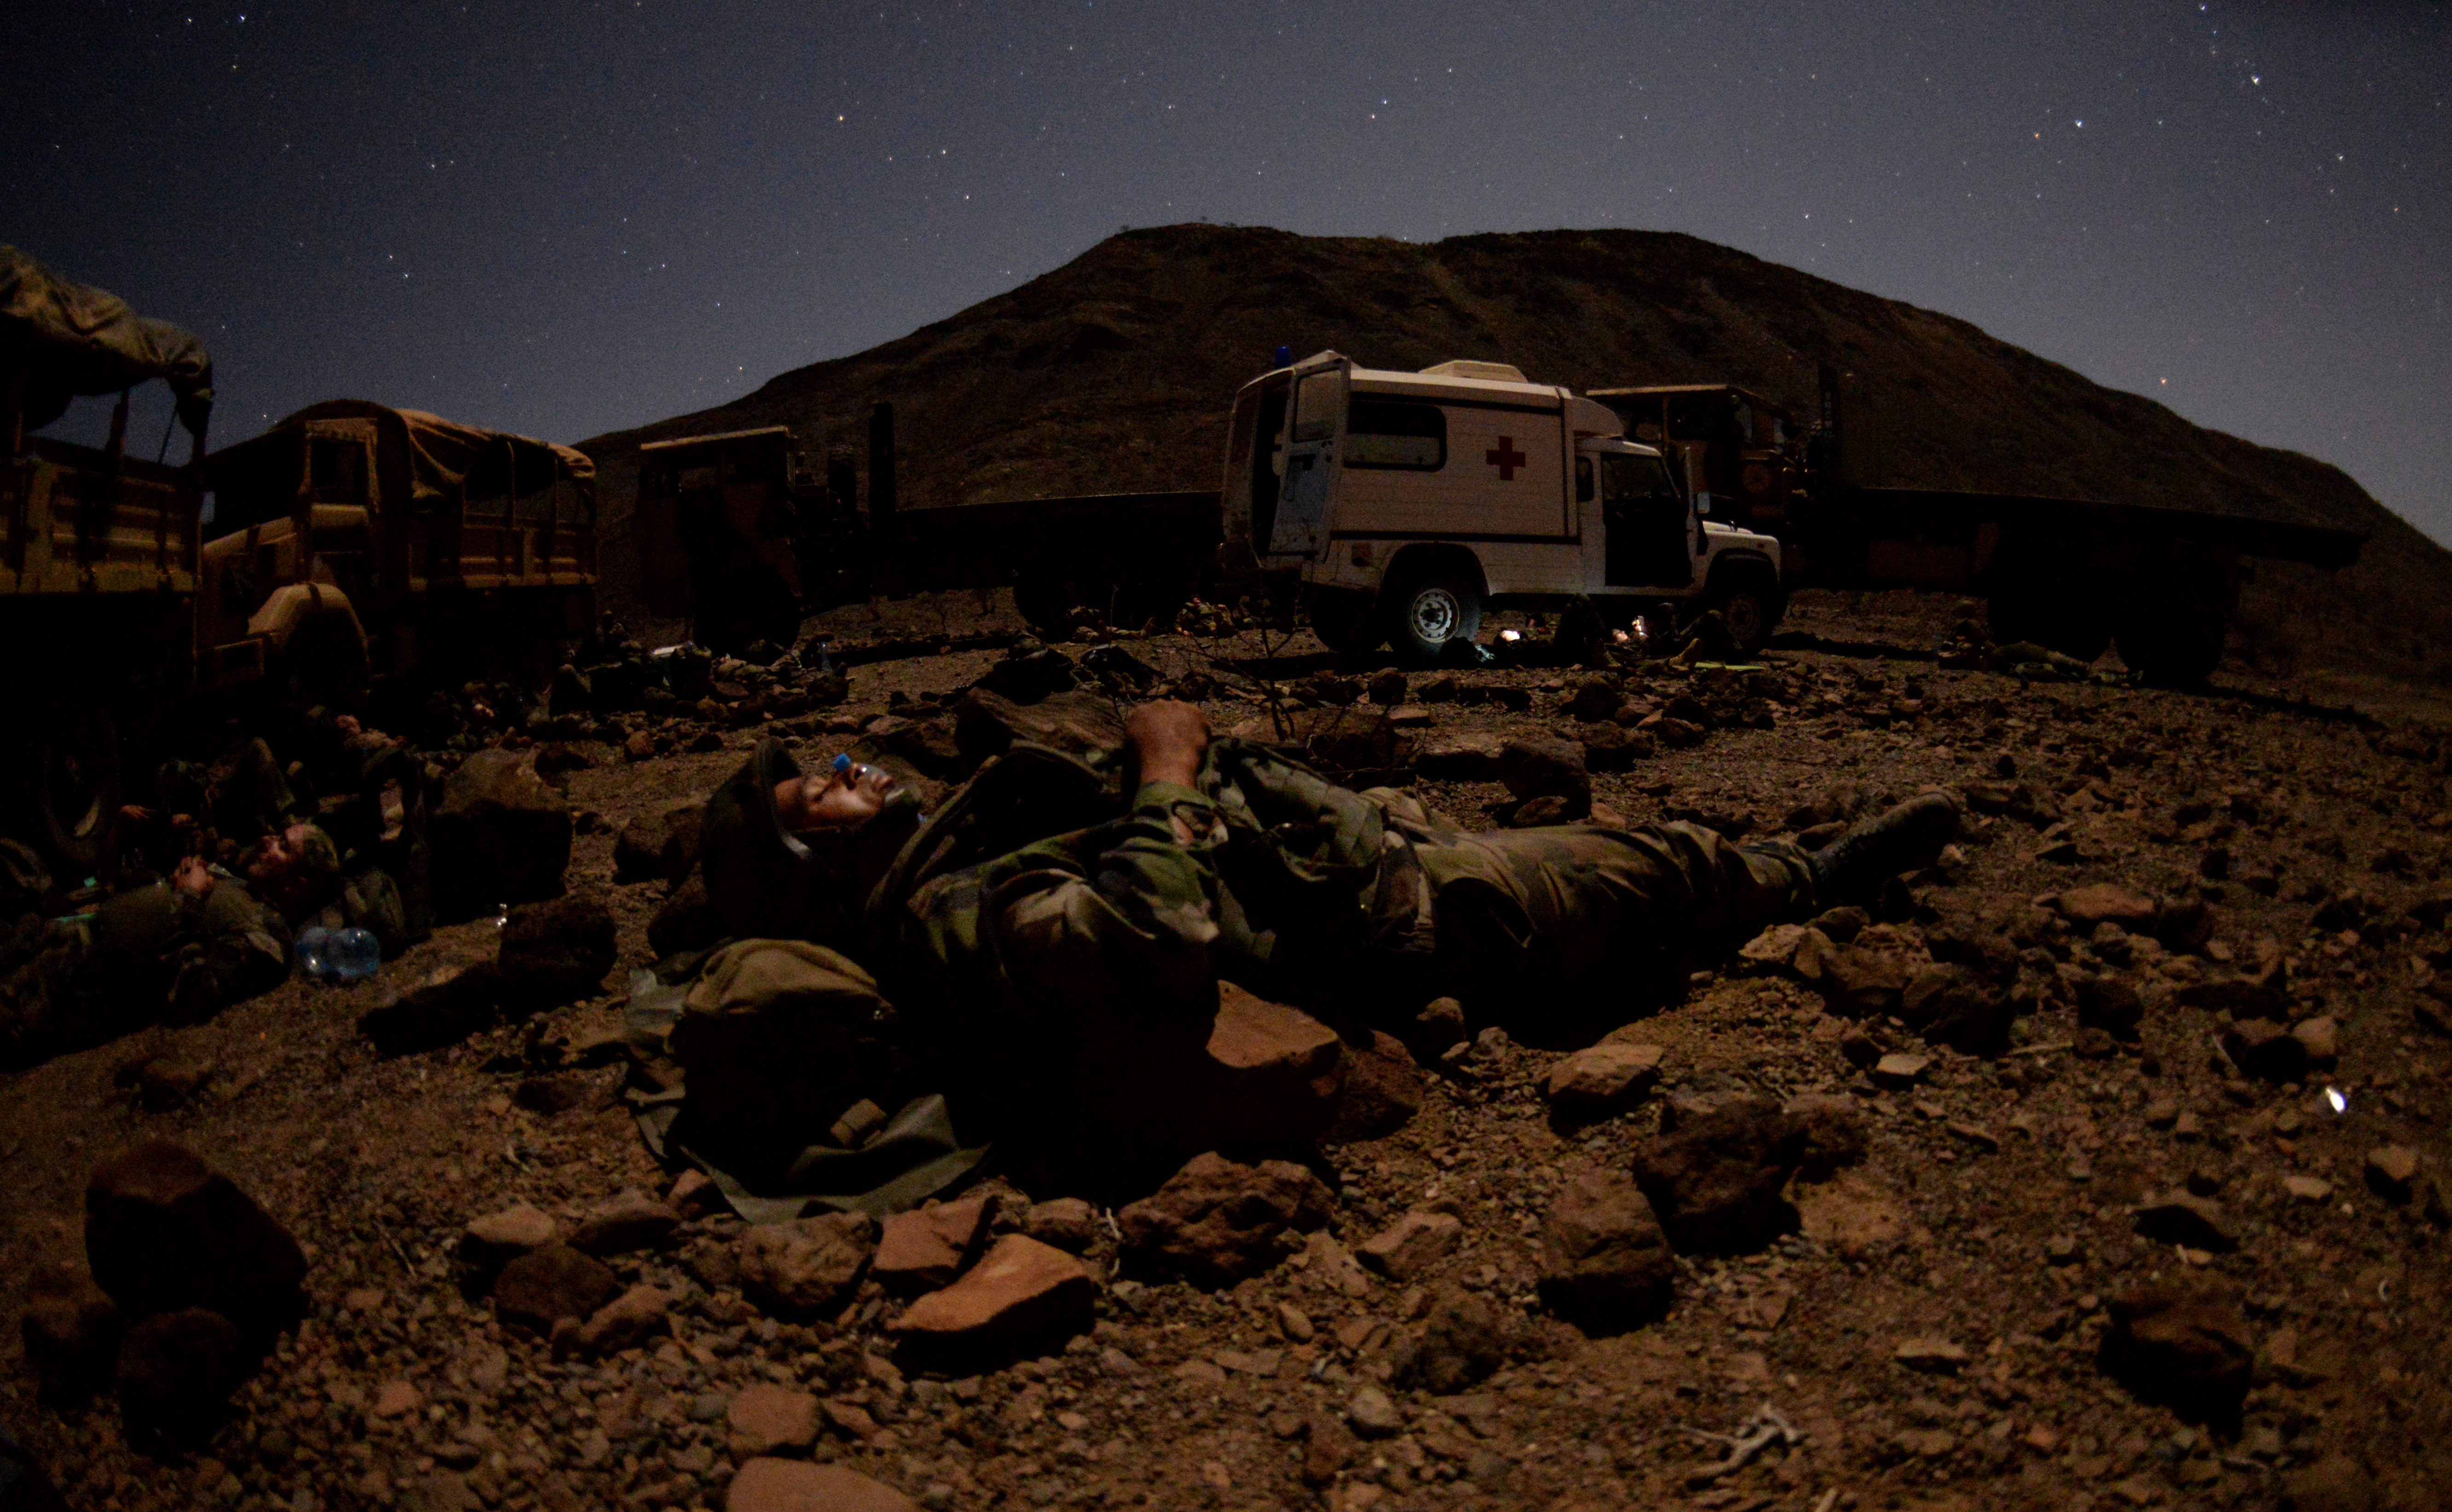 French and U.S. Army Soldiers bed down during a field training exercise March 16, 2016, in Arta, Djibouti. Soldiers got as much sleep as they could between attacks from simulated opposing forces. (U.S. Air Force photo by Staff Sgt. Kate Thornton)